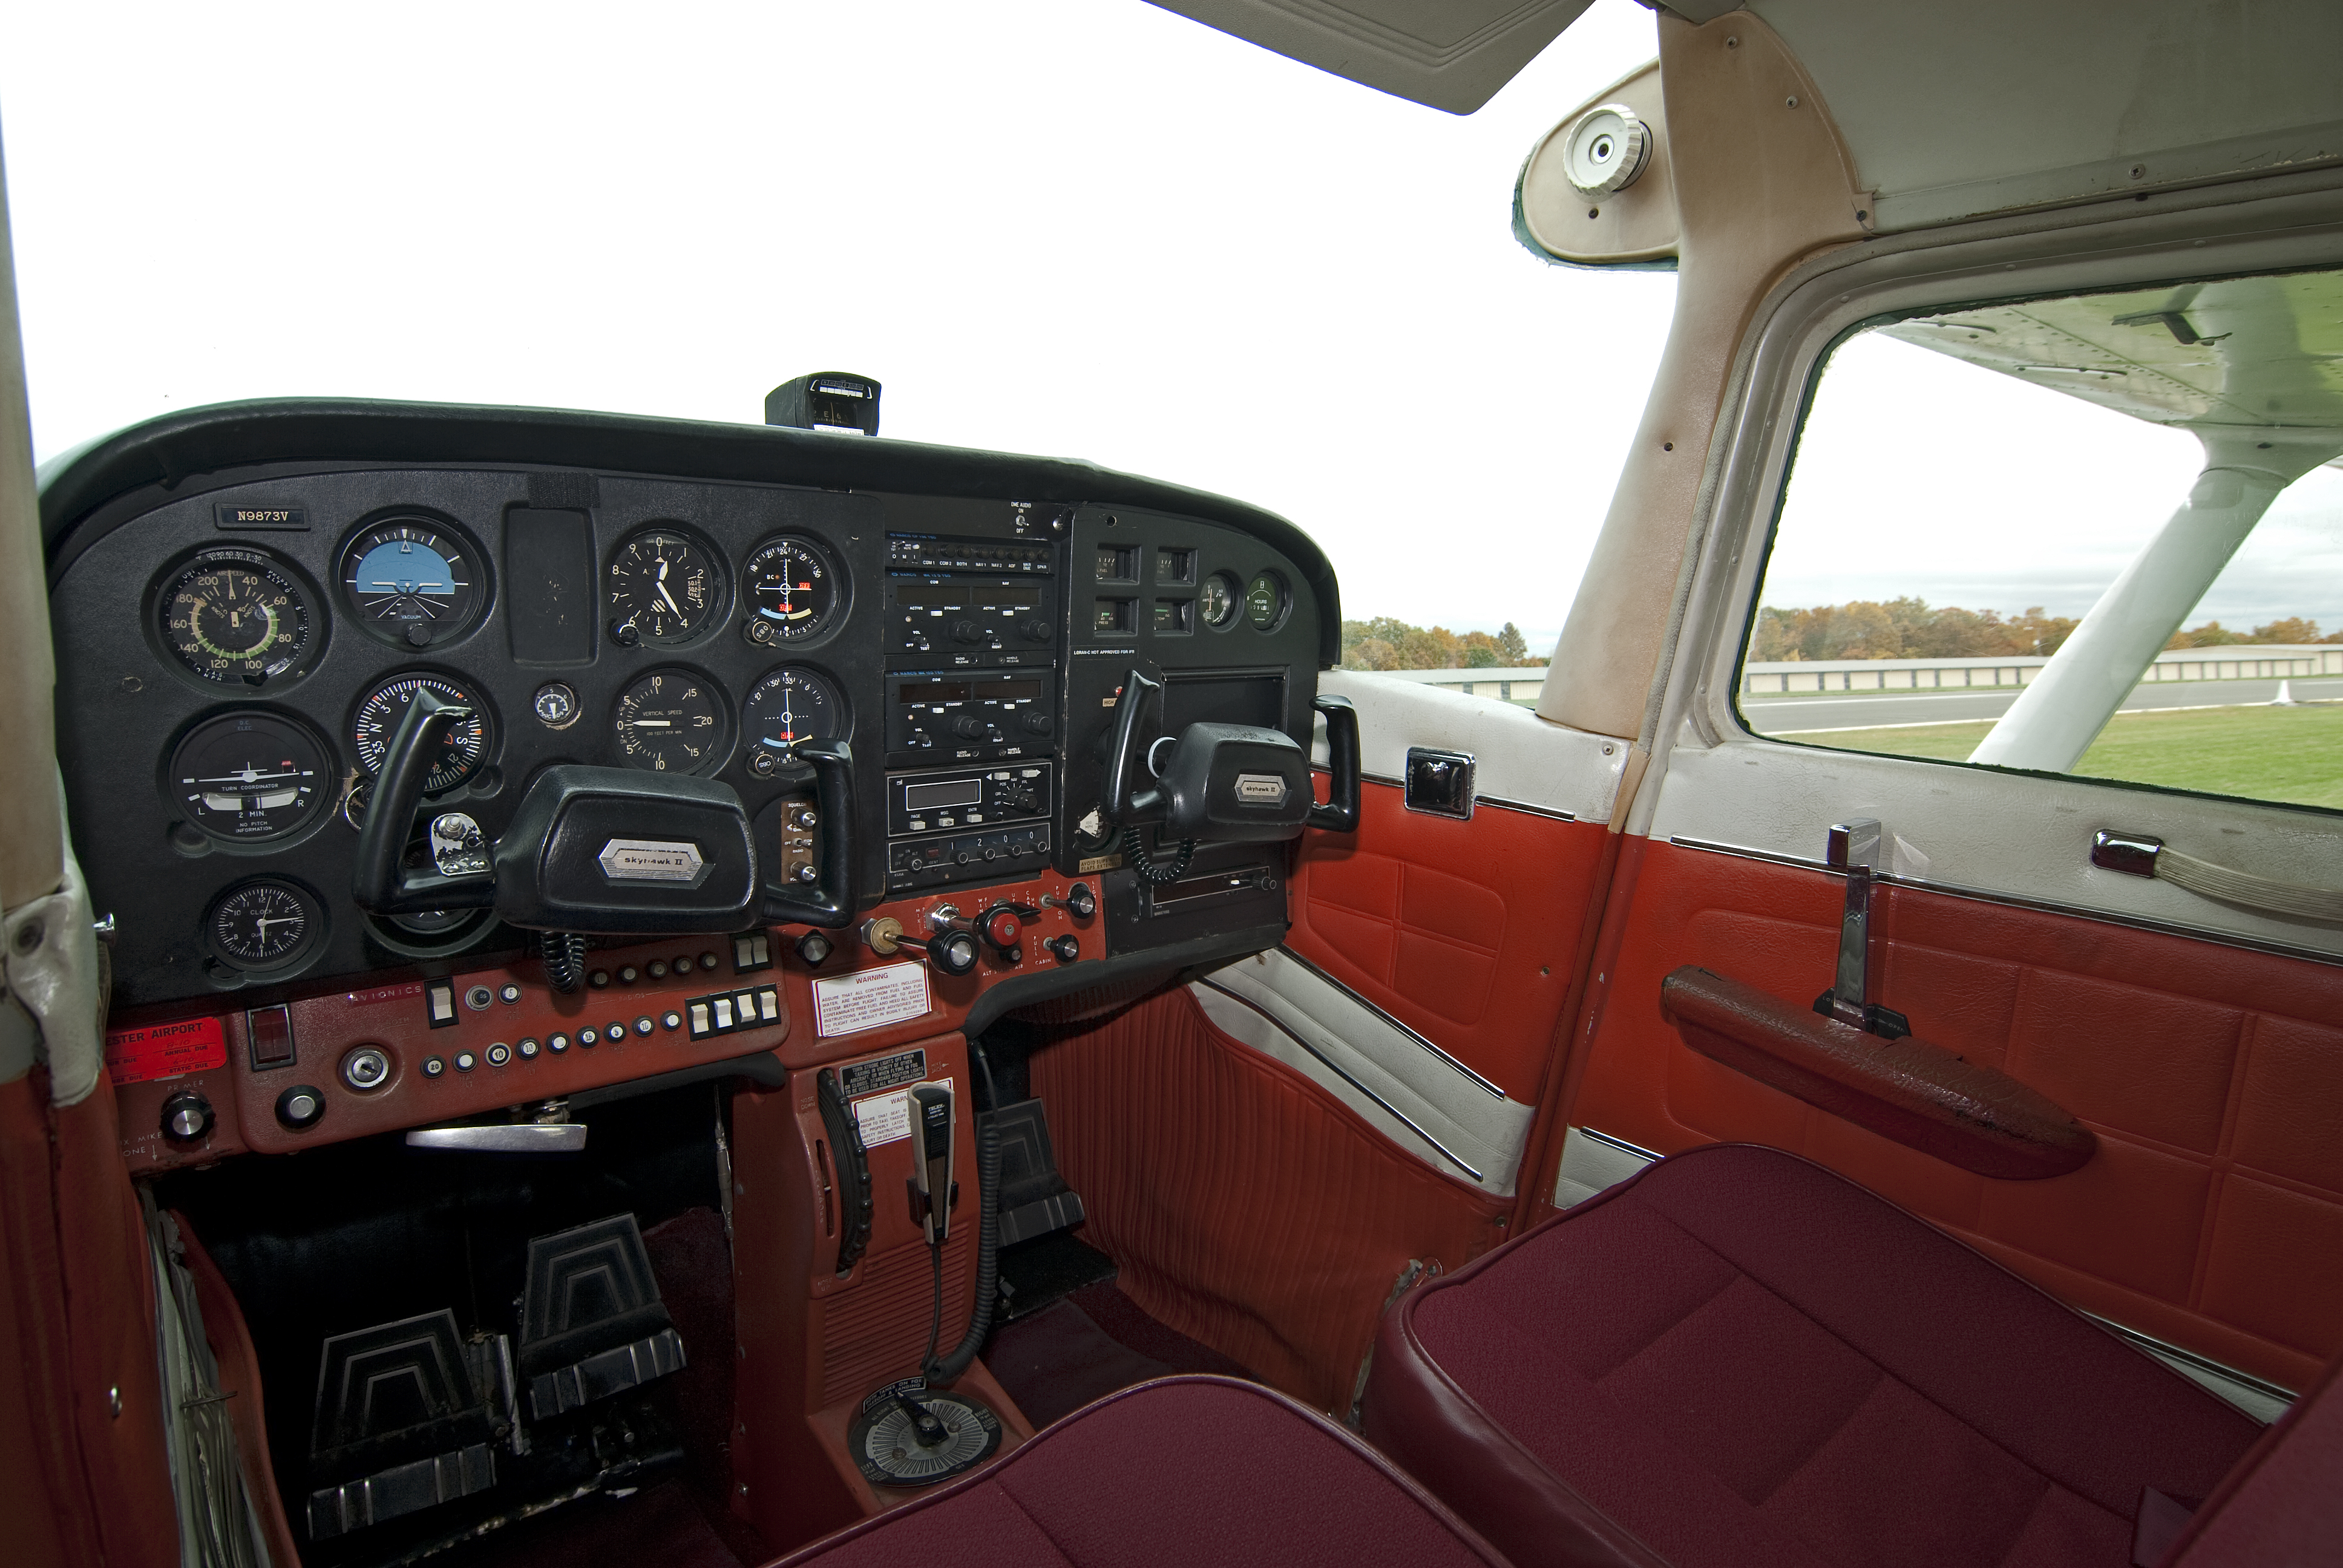 Interior of the Cessna 172 Skyhawk at Chester Airport